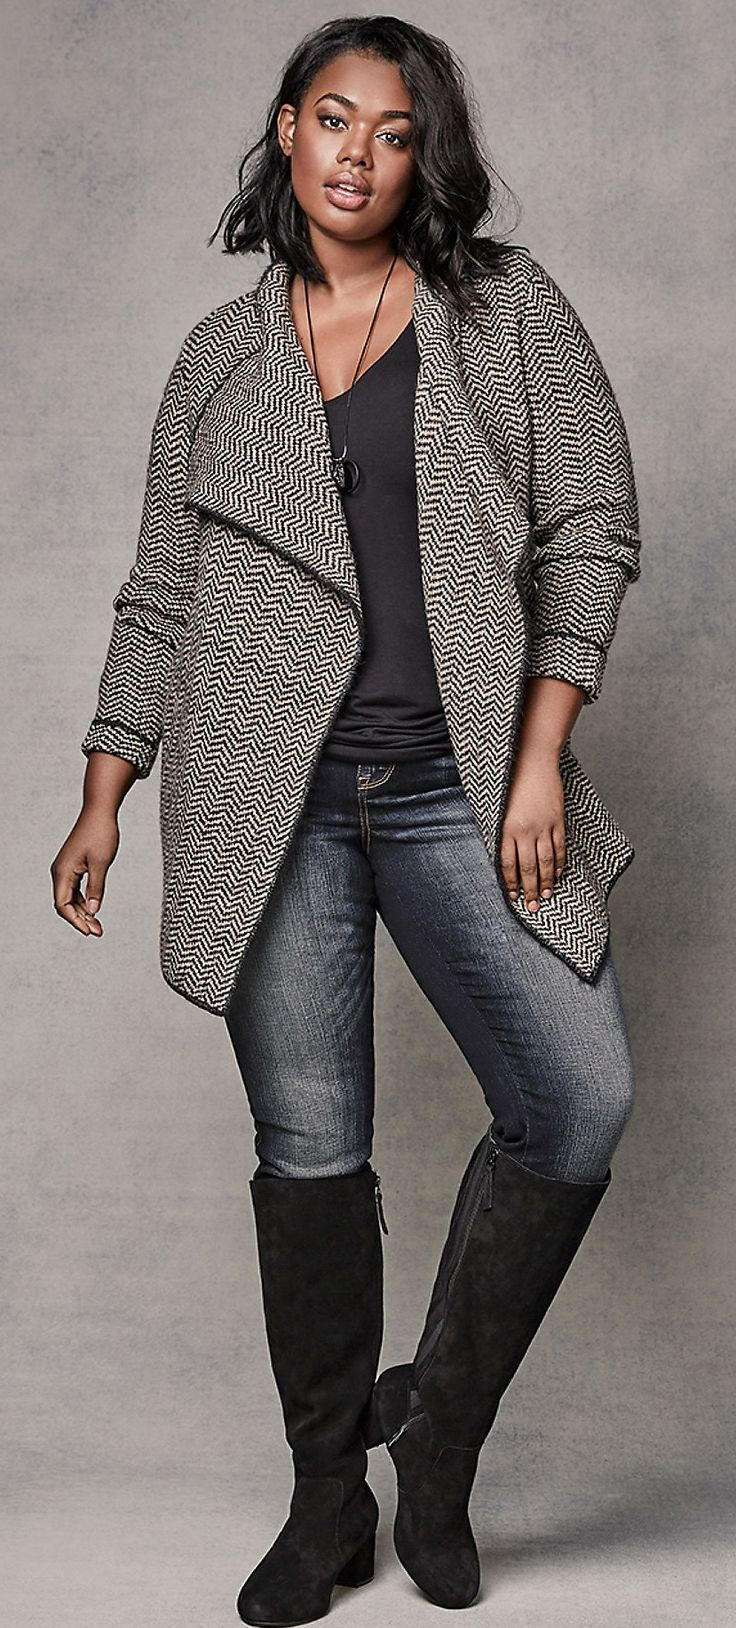 Plus Size Cardigan Outfit - Shop The Look Women Big Size Clothes - http://amzn.to/2ix7dK5